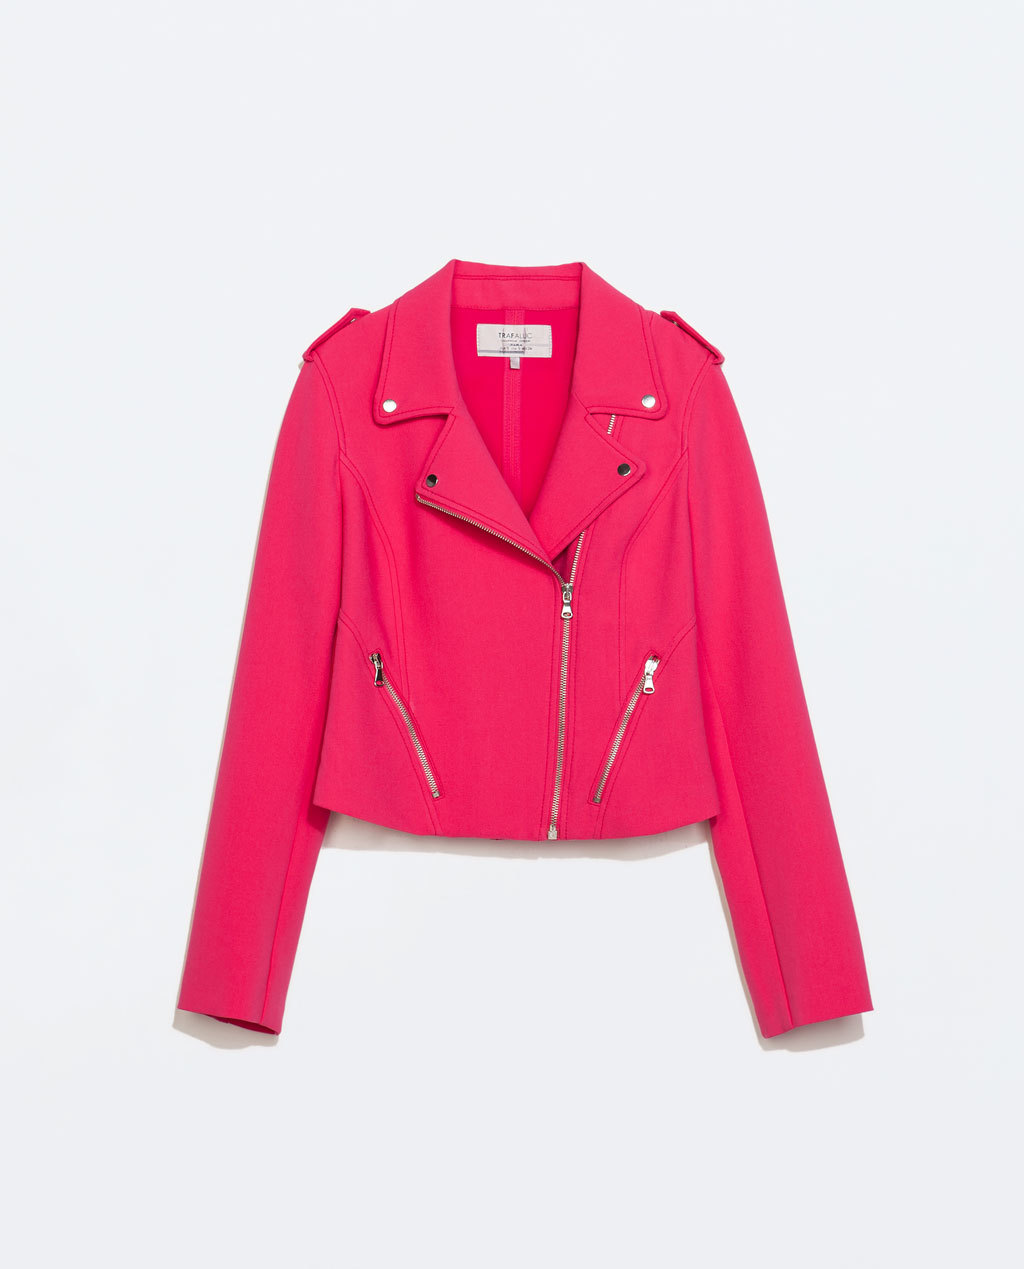 Short Biker Jacket - pattern: plain; style: biker; shoulder detail: obvious epaulette; collar: asymmetric biker; predominant colour: hot pink; occasions: casual, evening, creative work; fit: tailored/fitted; fibres: polyester/polyamide - stretch; sleeve length: long sleeve; sleeve style: standard; collar break: high/illusion of break when open; pattern type: fabric; texture group: other - light to midweight; season: s/s 2014; length: cropped; wardrobe: highlight